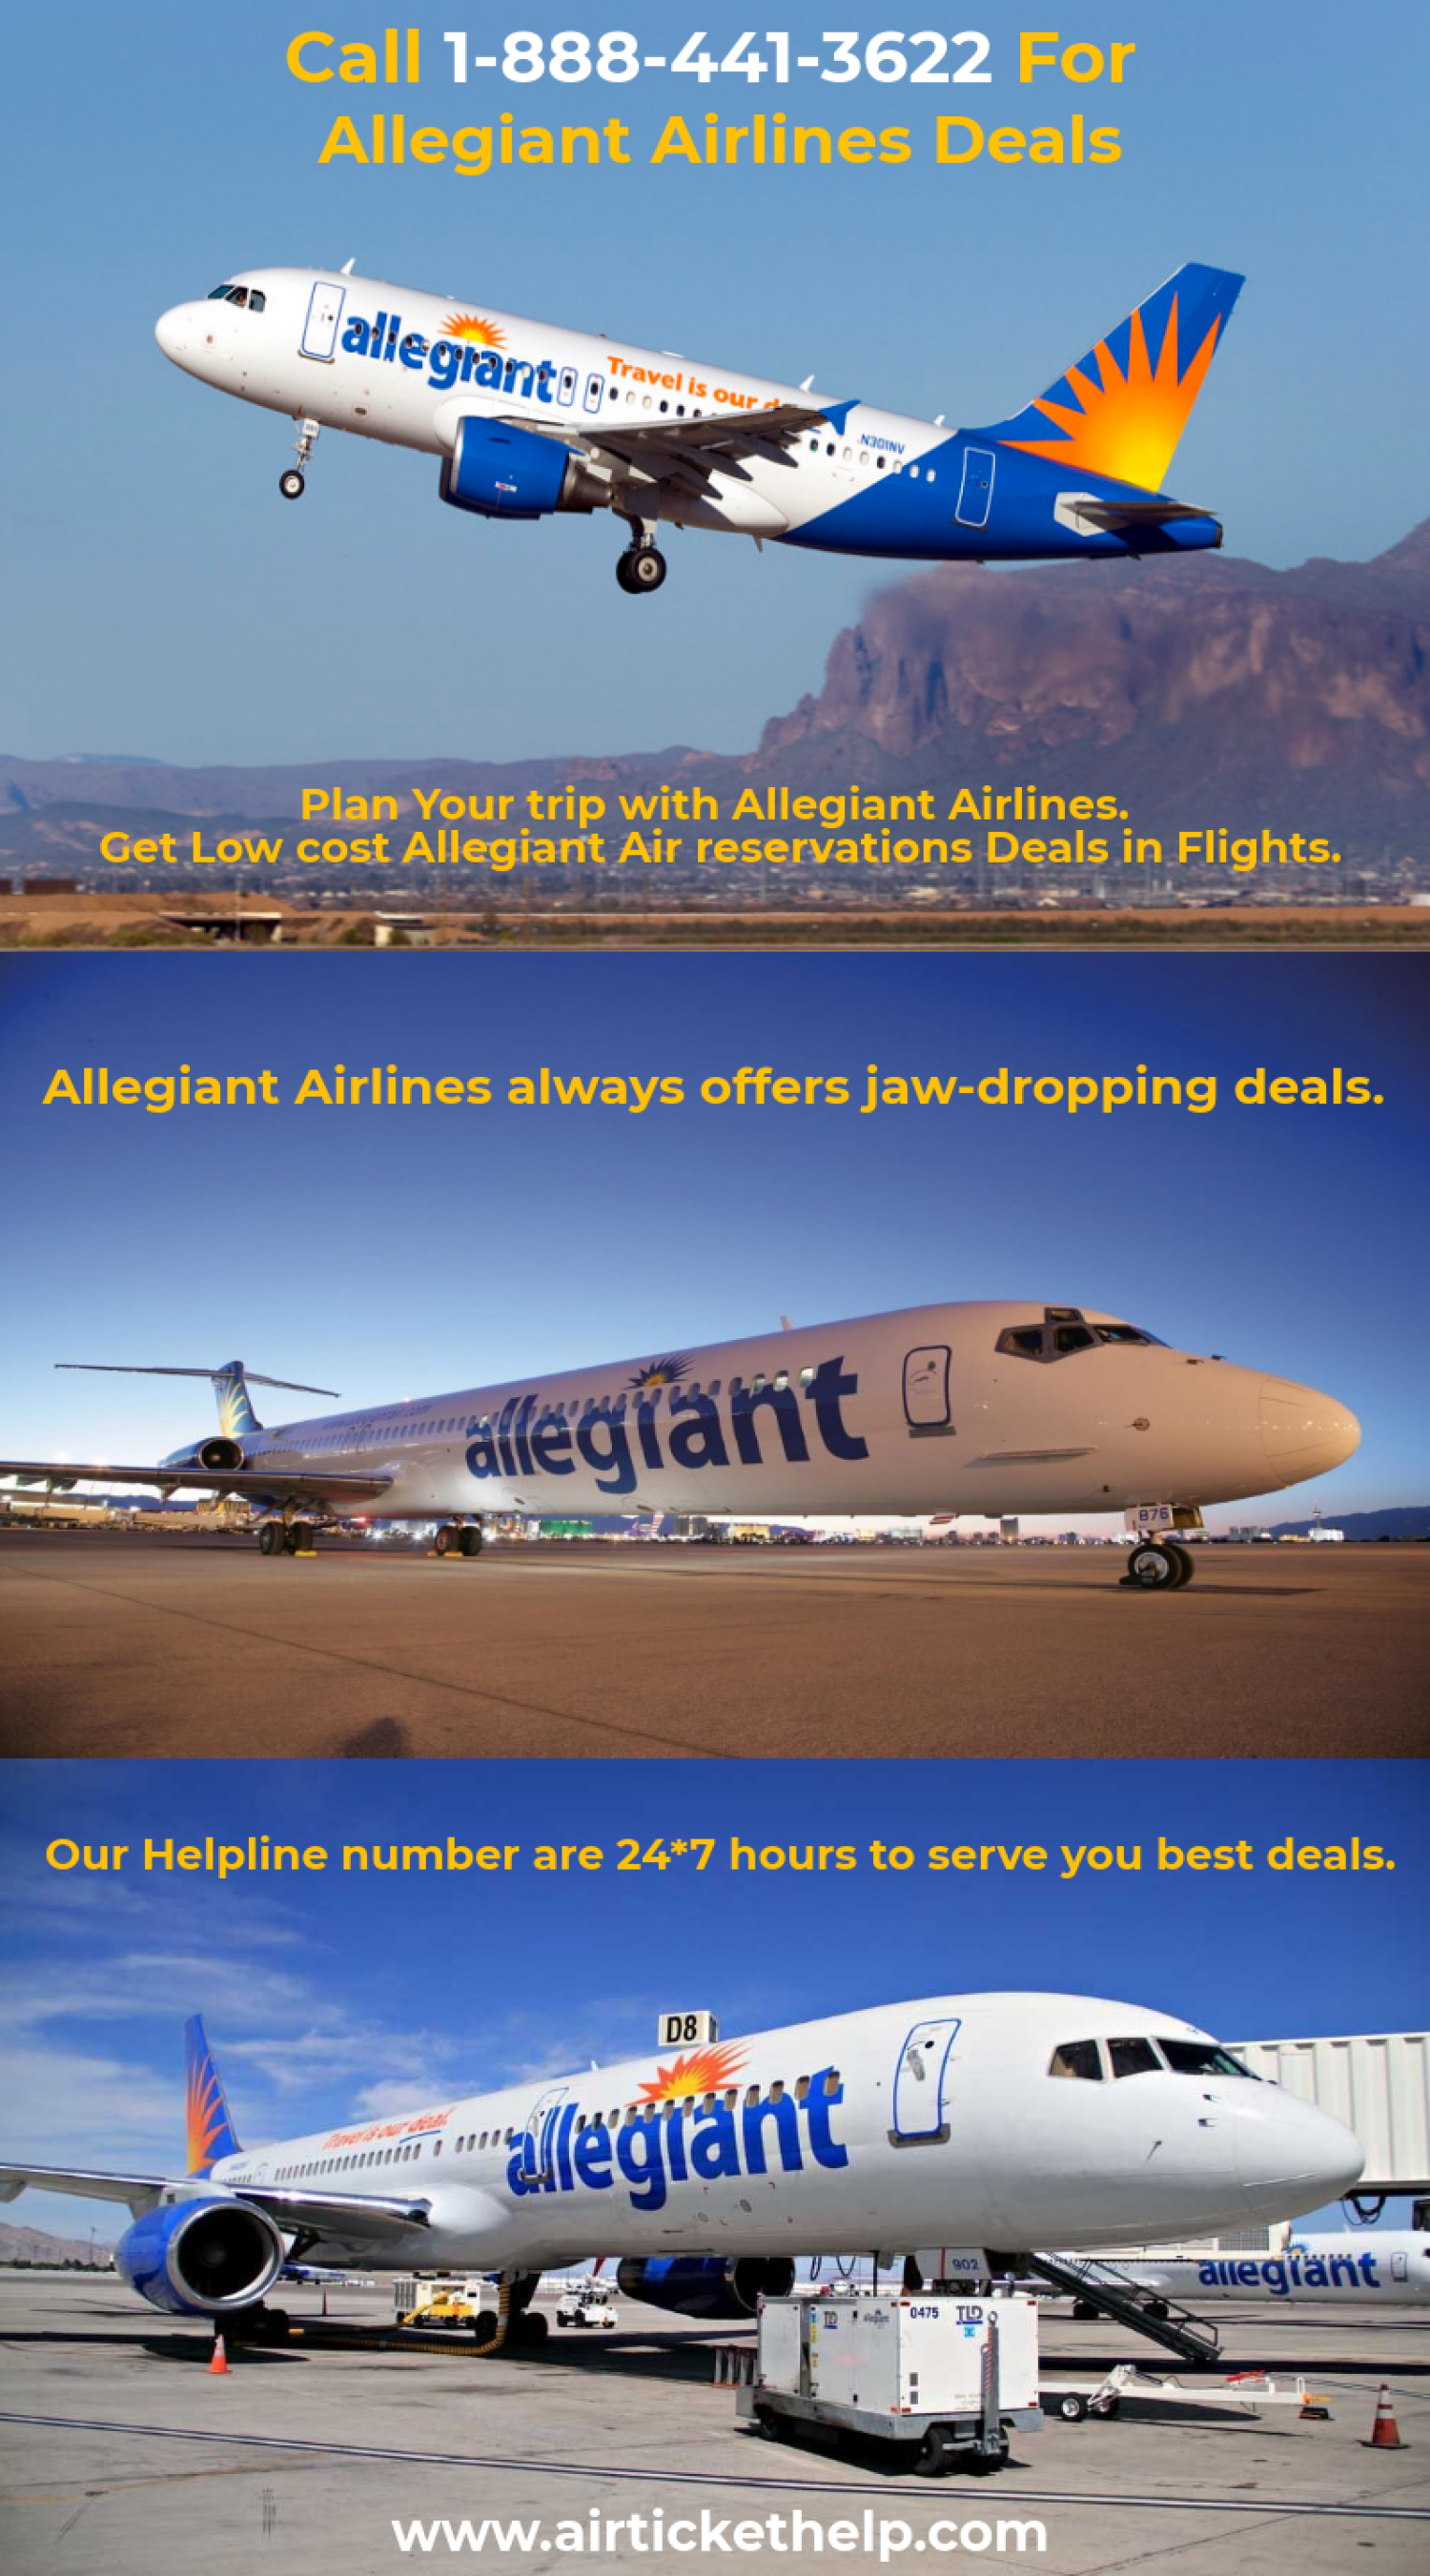 Call 1-888-441-3622 For Allegiant Airlines Deals Infographic